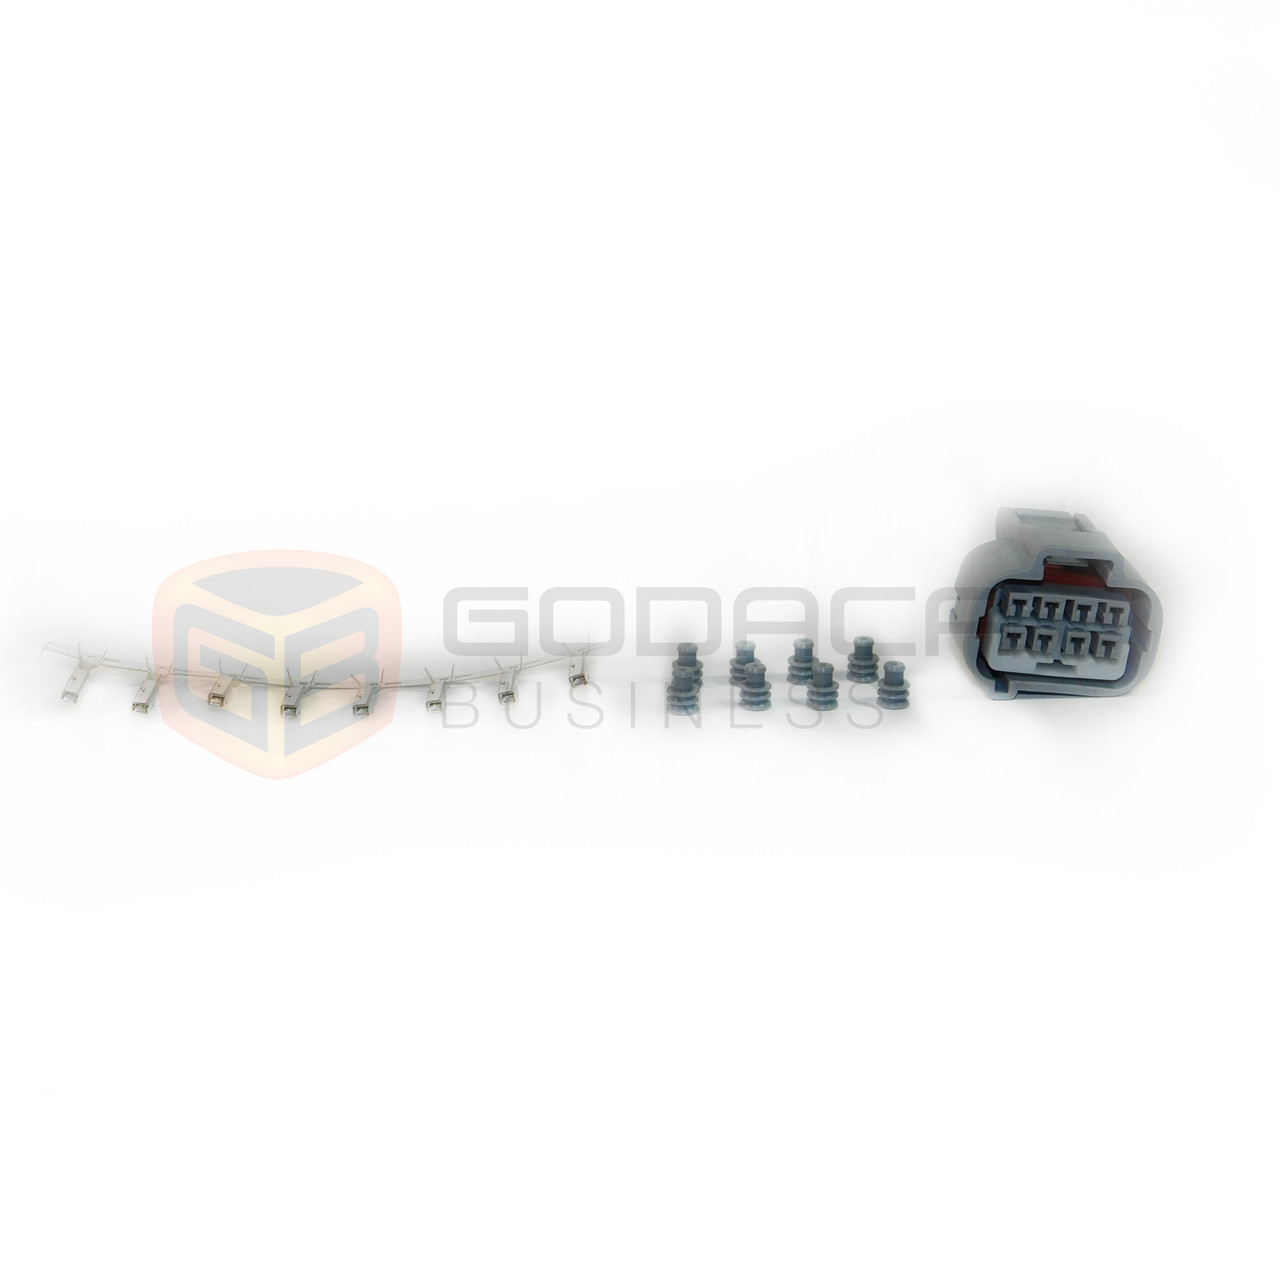 small resolution of 1x connector for toyota supra mk4 fusebox 90980 10897 w out wire godaca llc